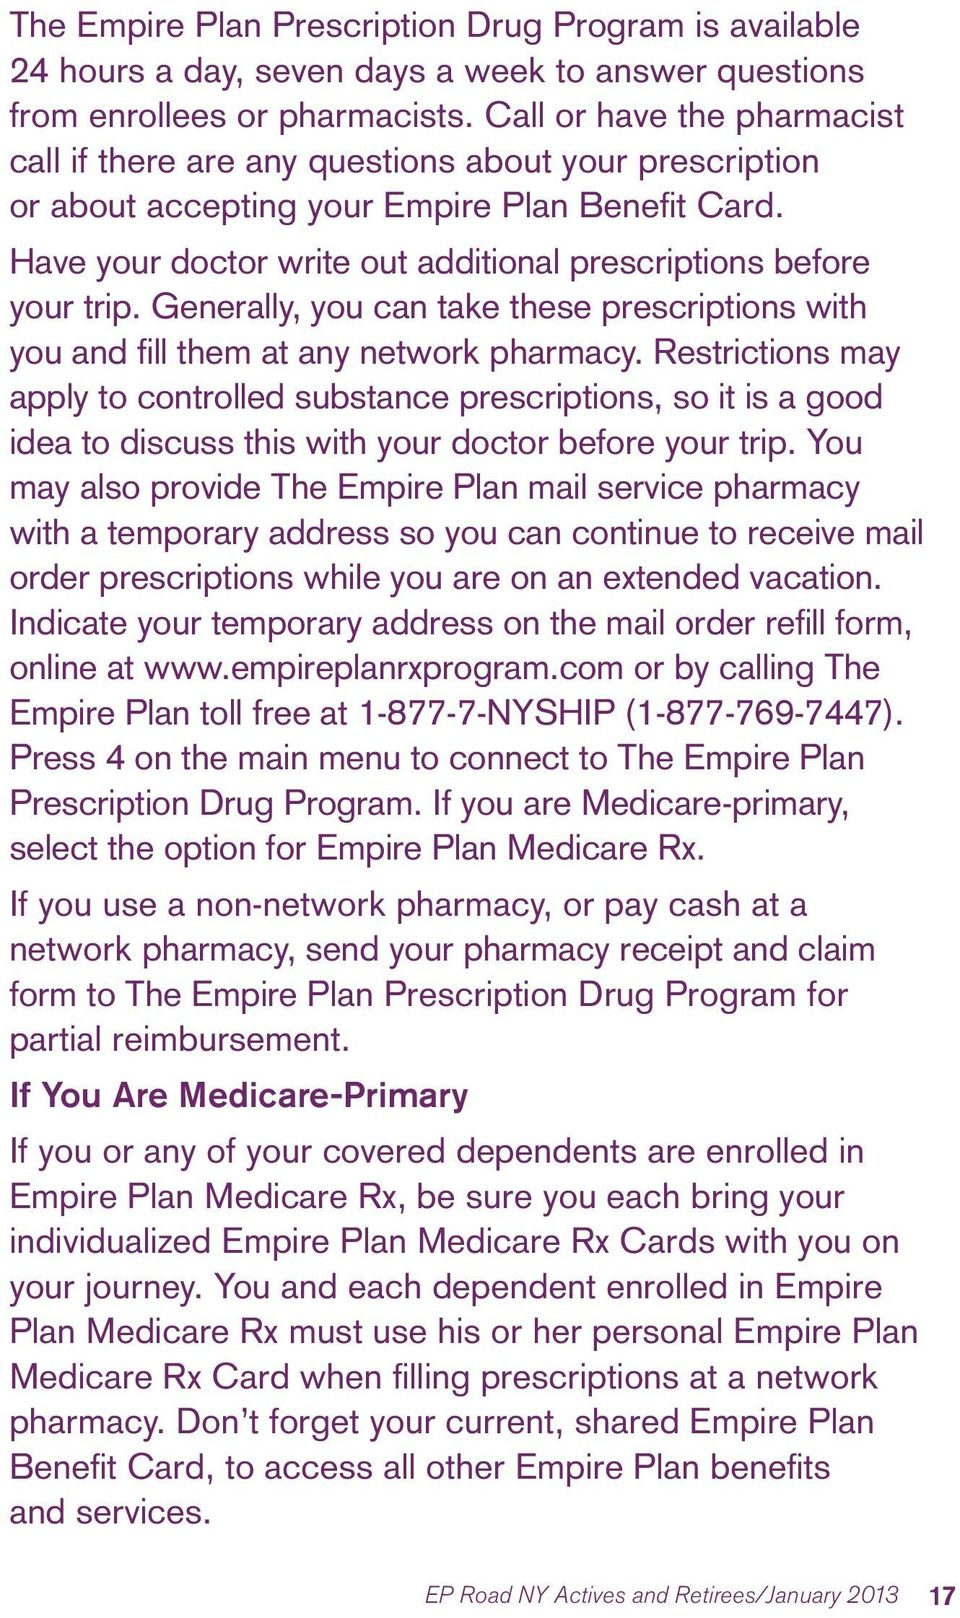 Have your doctor write out additional prescriptions before your trip. Generally, you can take these prescriptions with you and fill them at any network pharmacy.